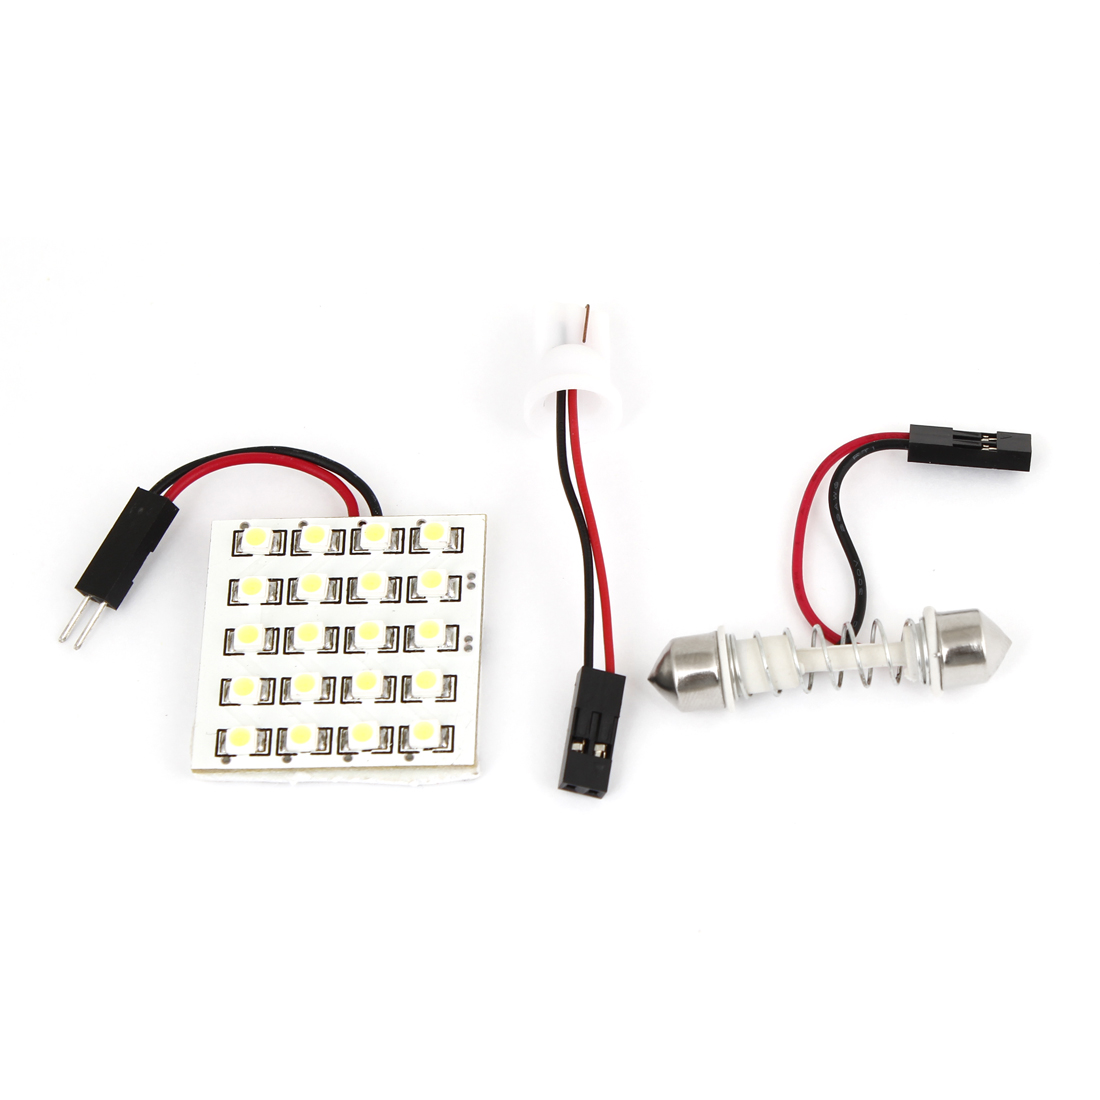 White 20 LED 1210 SMD Dome Light Panle w T10 Festoon Adapter for Car